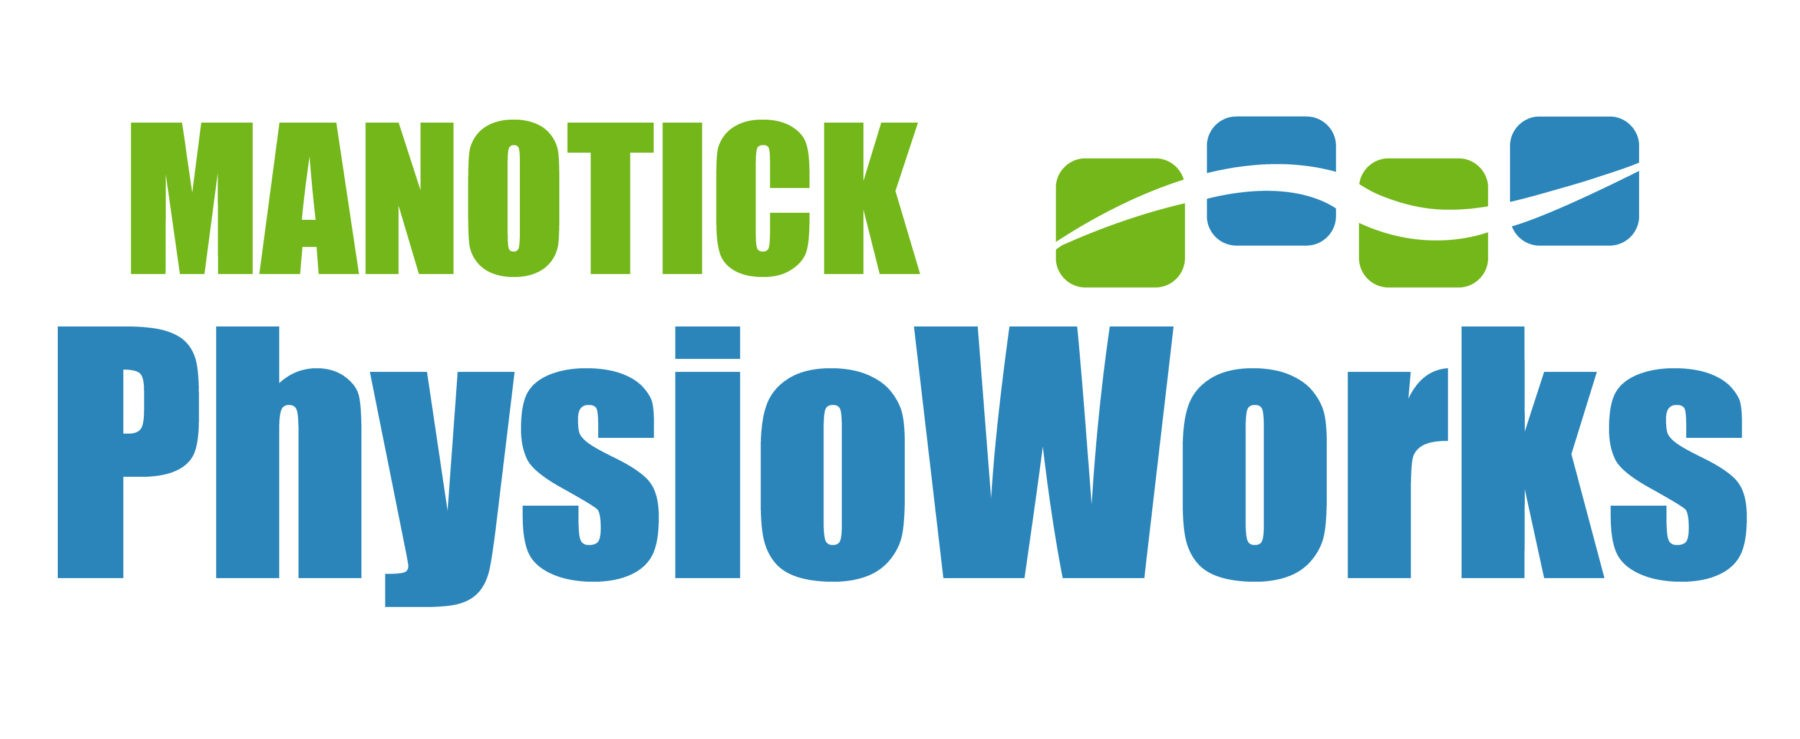 Manotick PhysioWorks logo - Business in Manotick